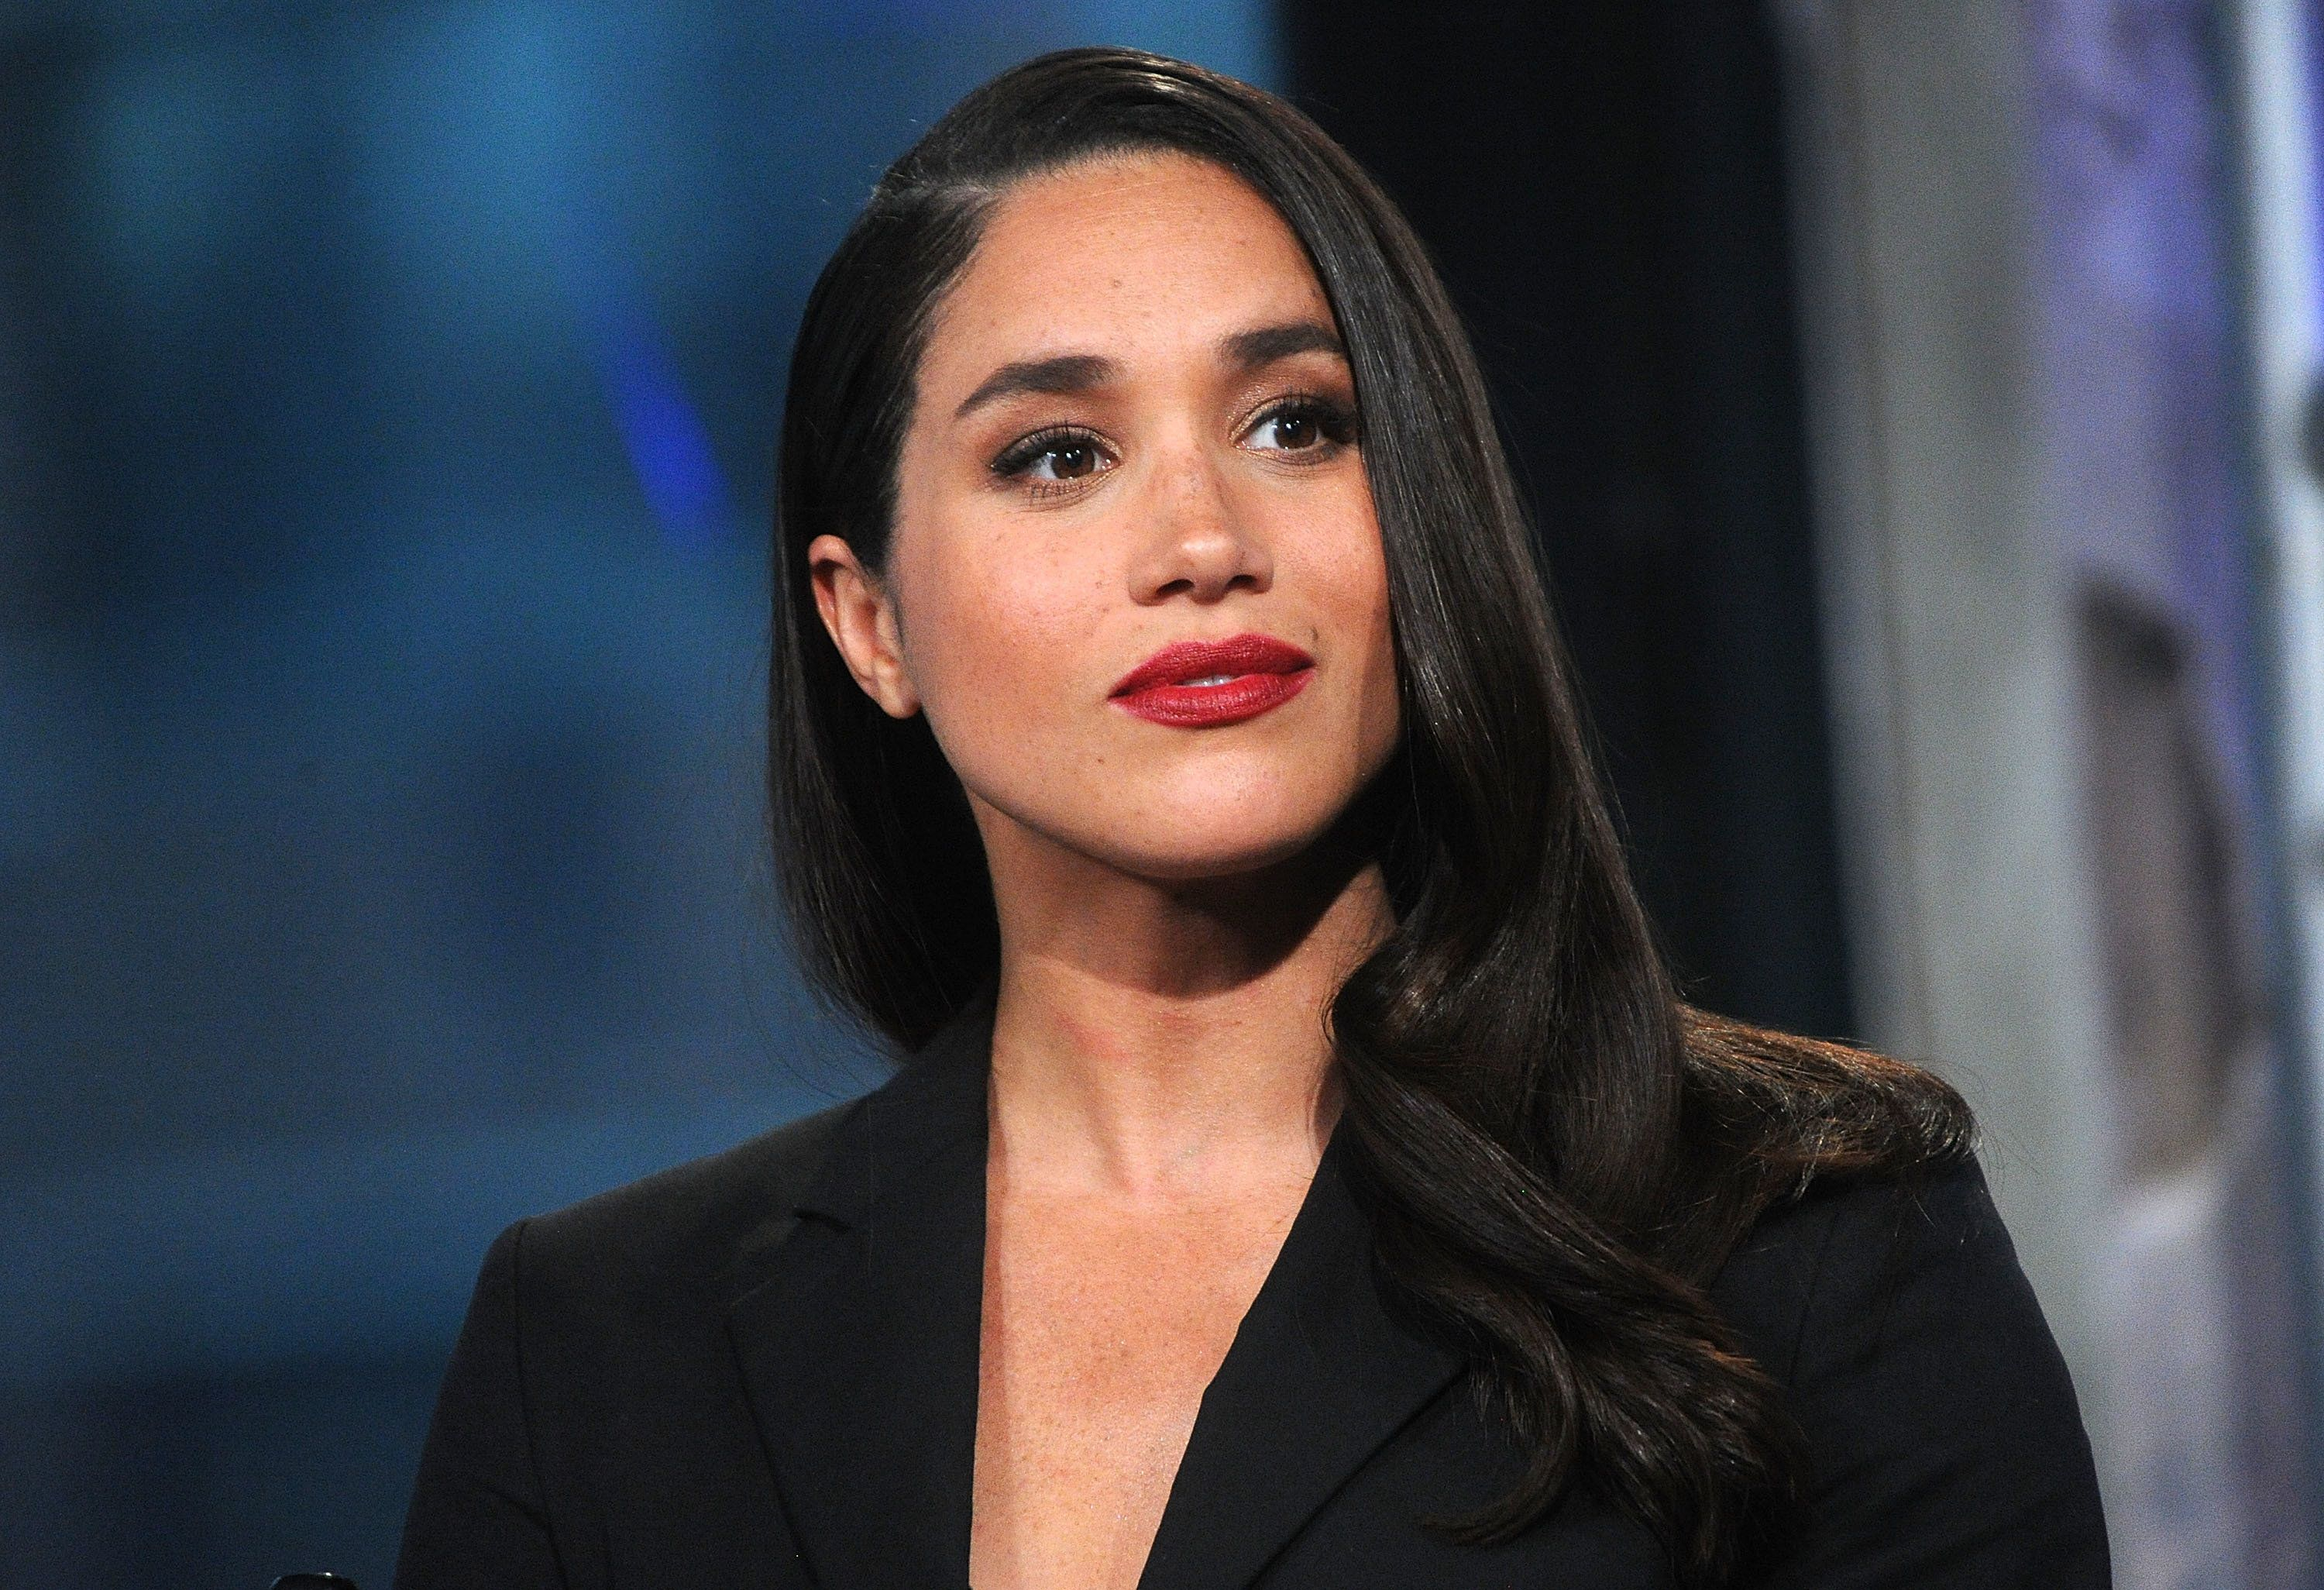 Meghan Markle has requested a leave of absence from her TV